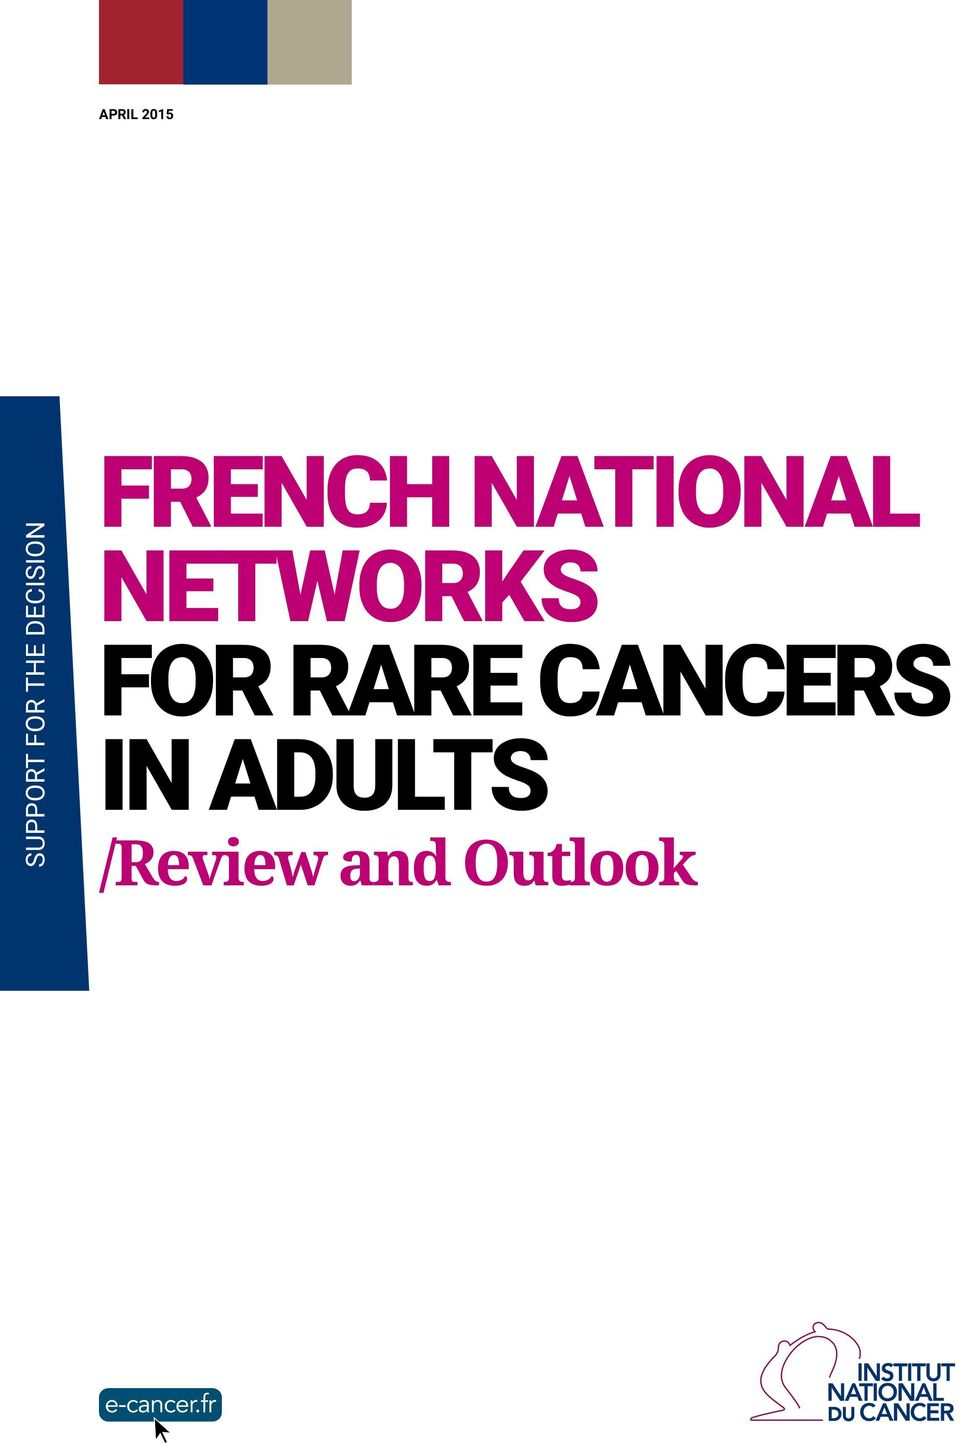 NETWORKS FOR RARE CANCERS